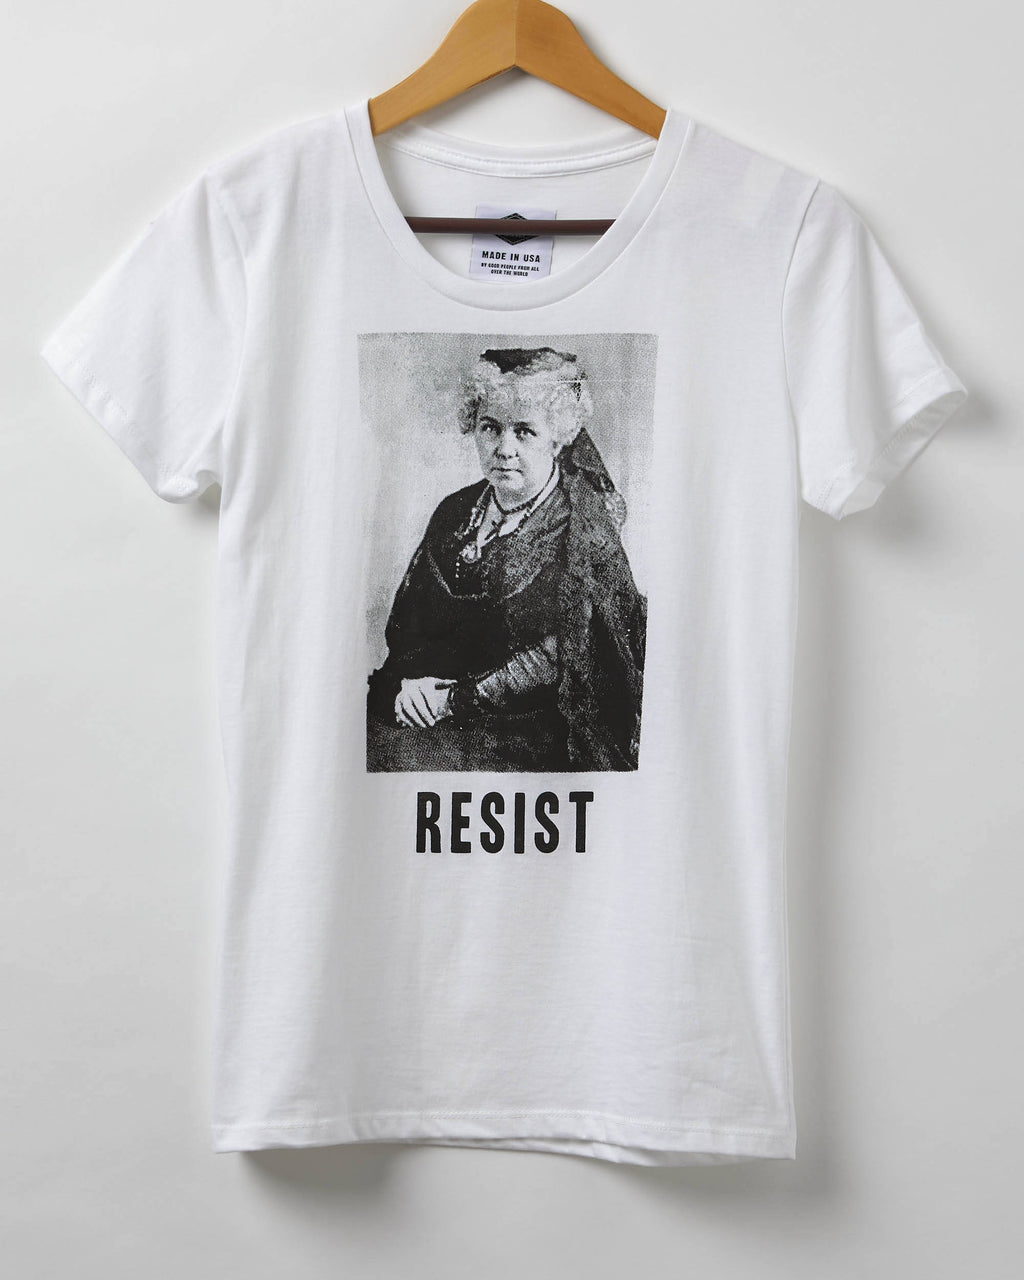 Resist Shirt - Suffragette Elizabeth Cady Stanton Resist Shirt - 100% Organic Cotton Women's T-Shirt - Made in USA